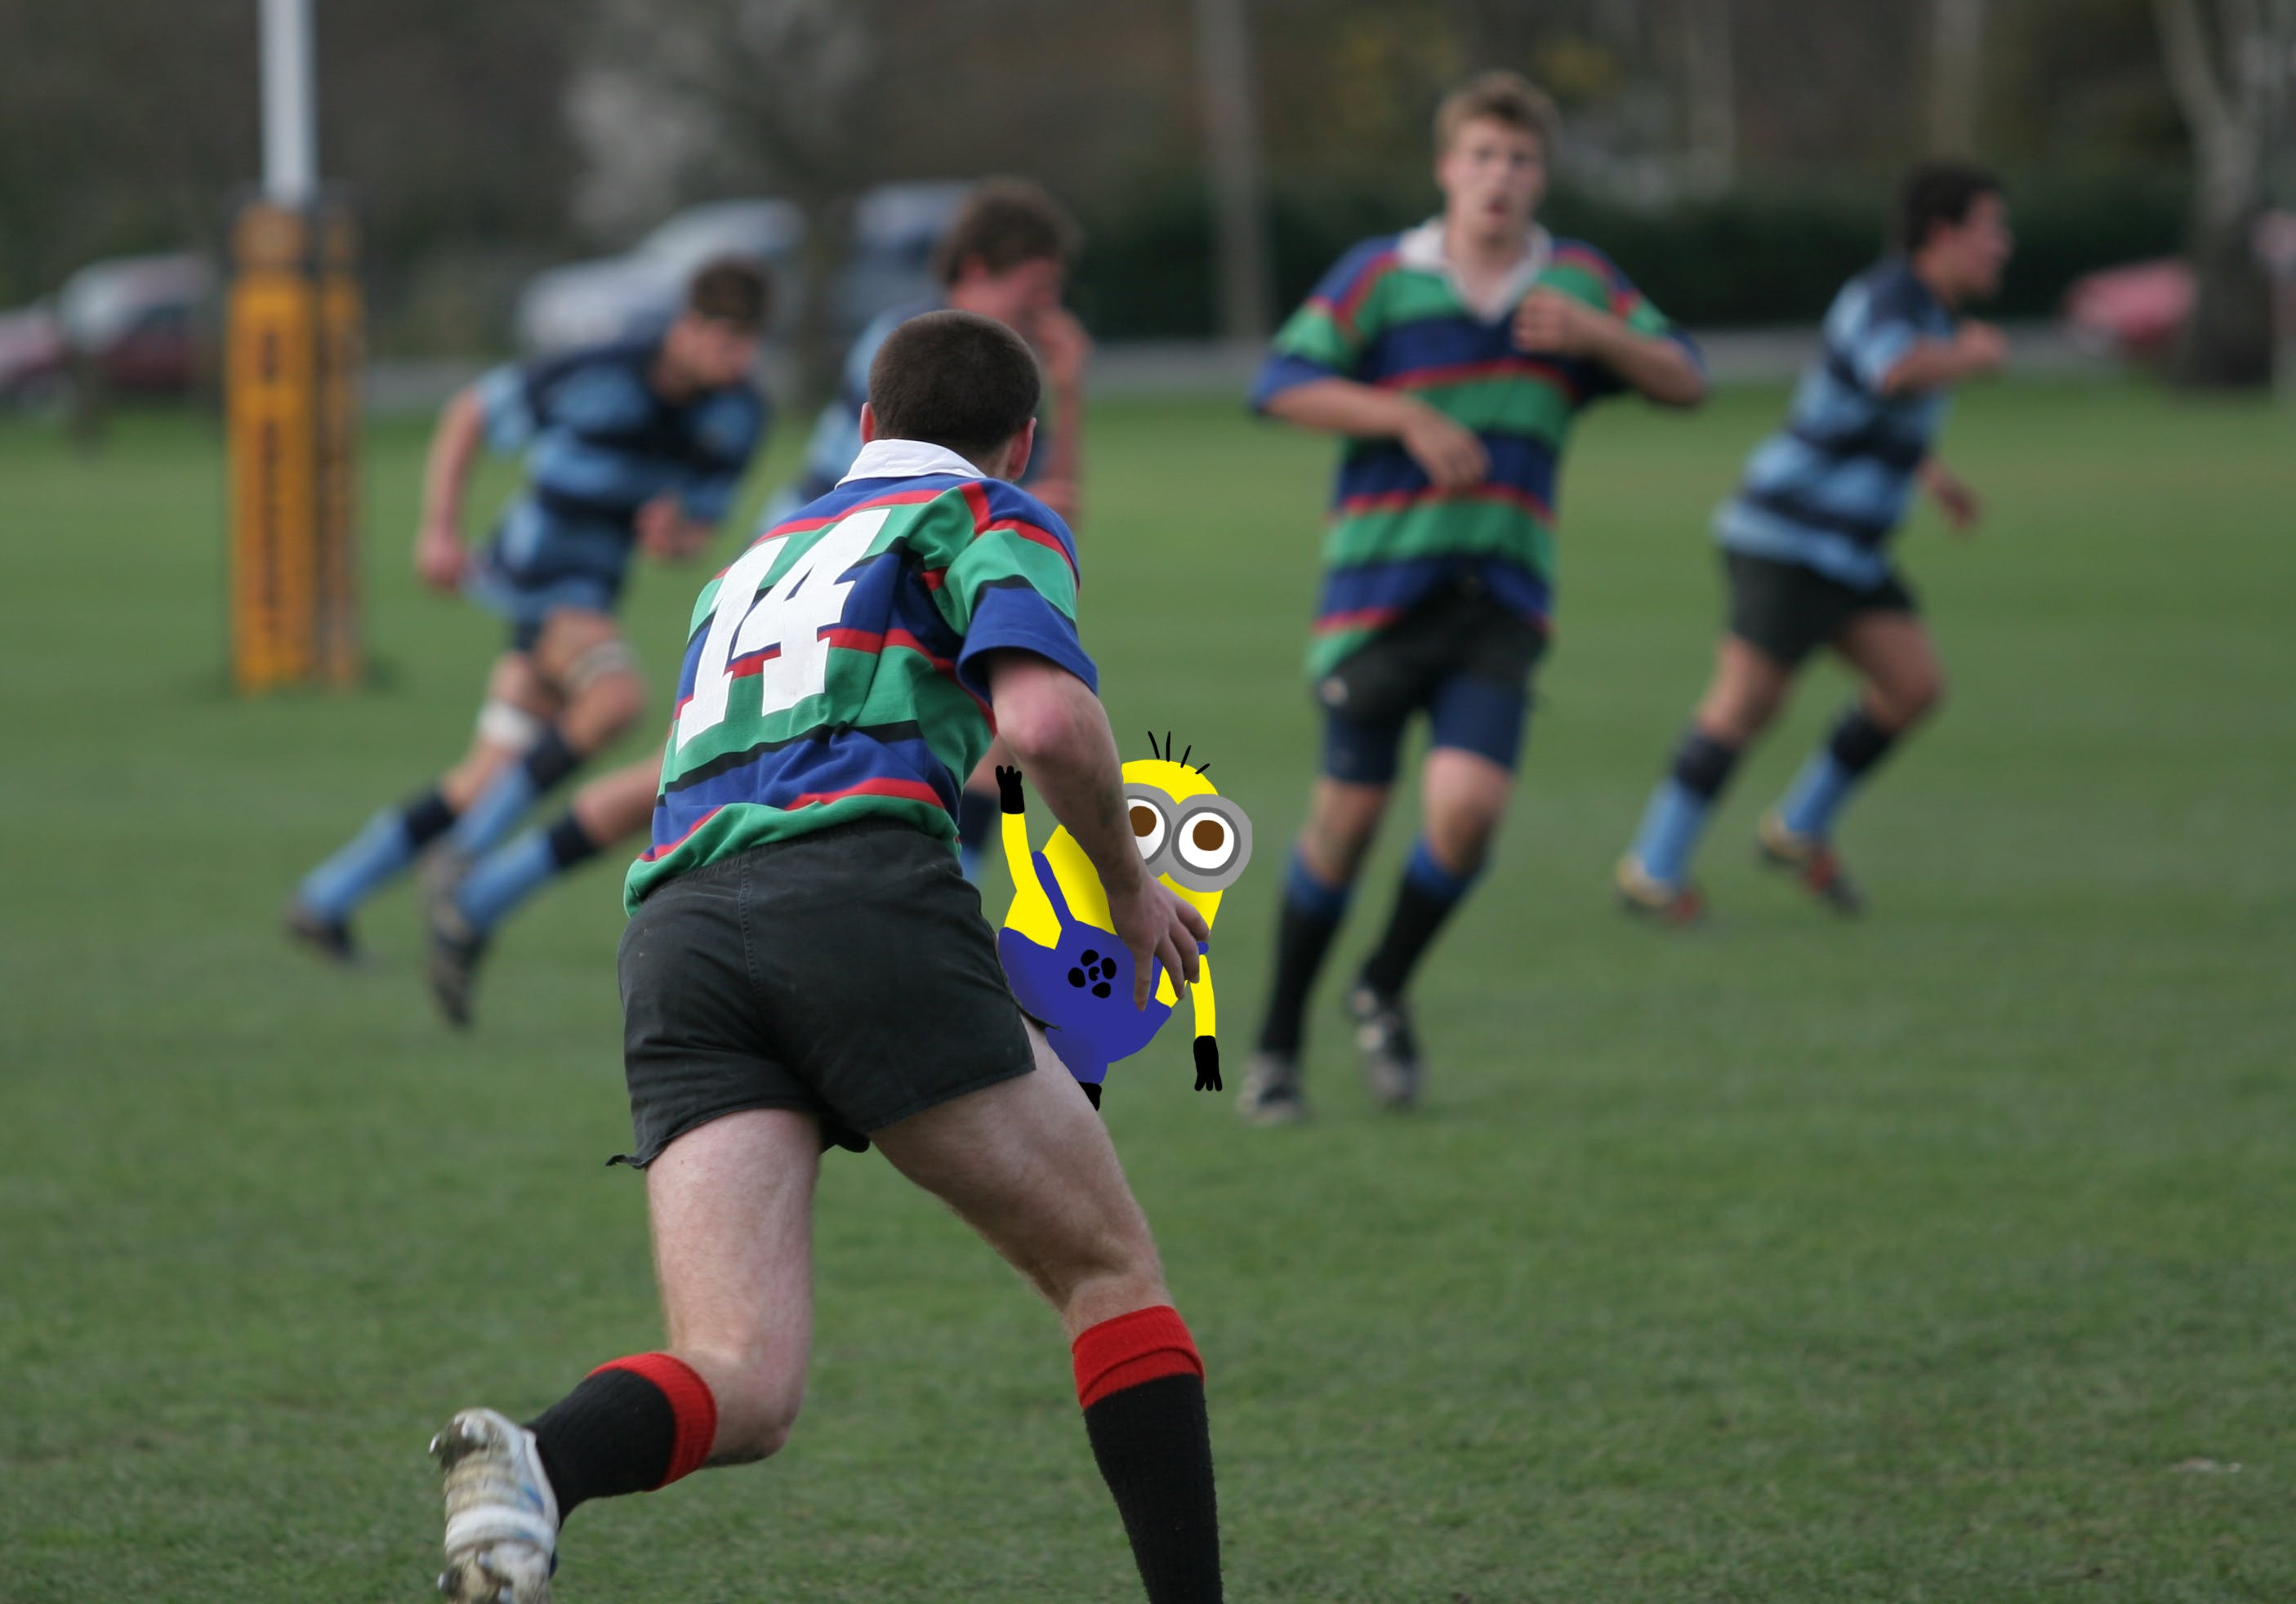 Minion being used as a Rugby Ball